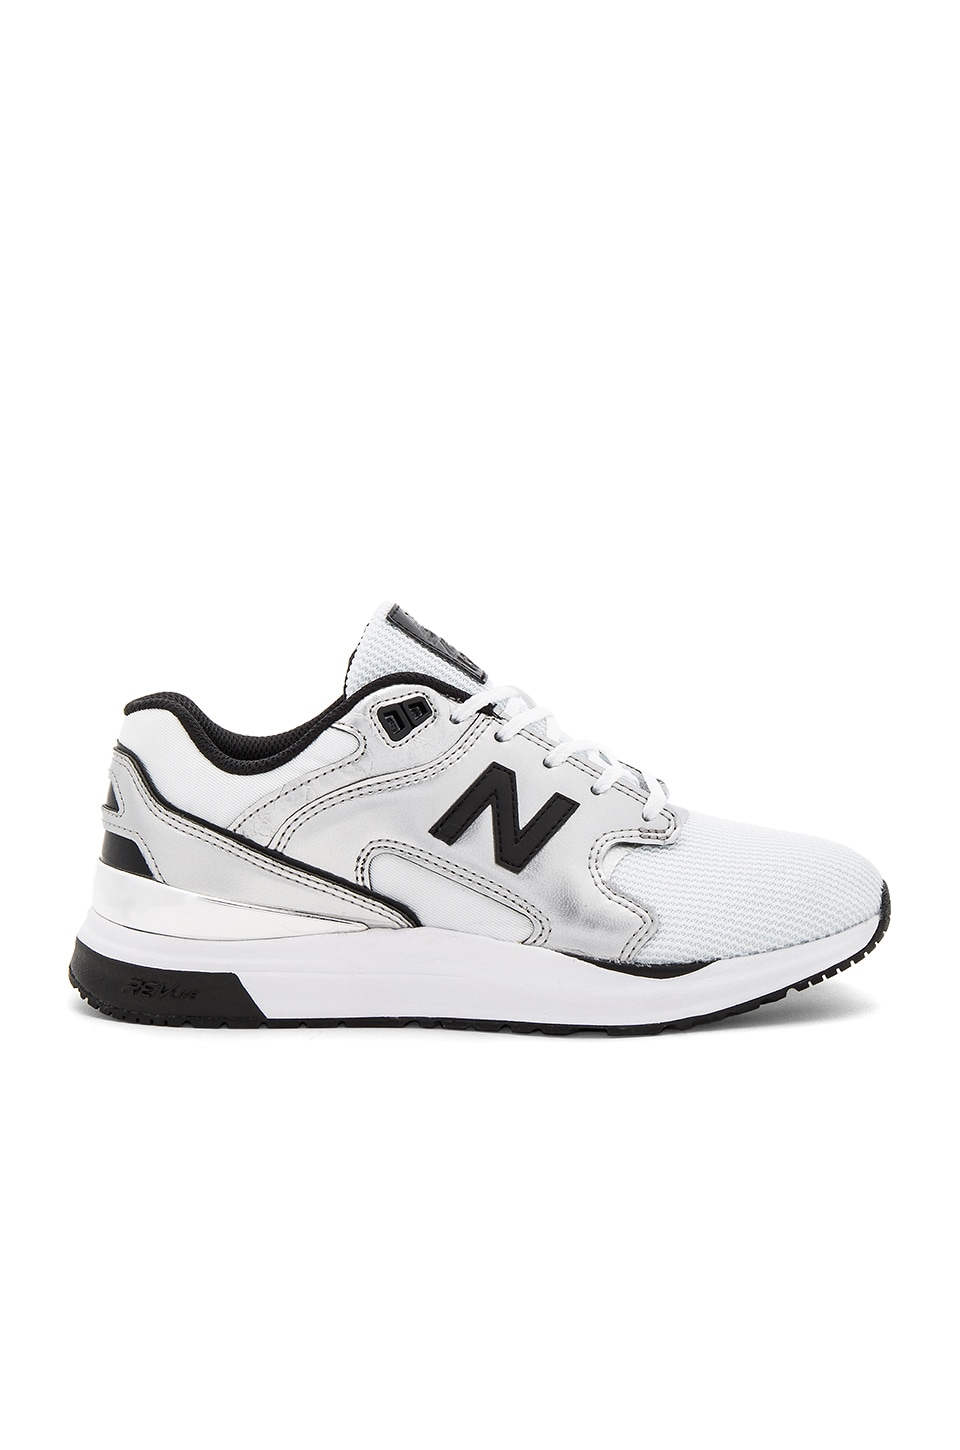 Photo of New Classics Sneaker by New Balance shoes